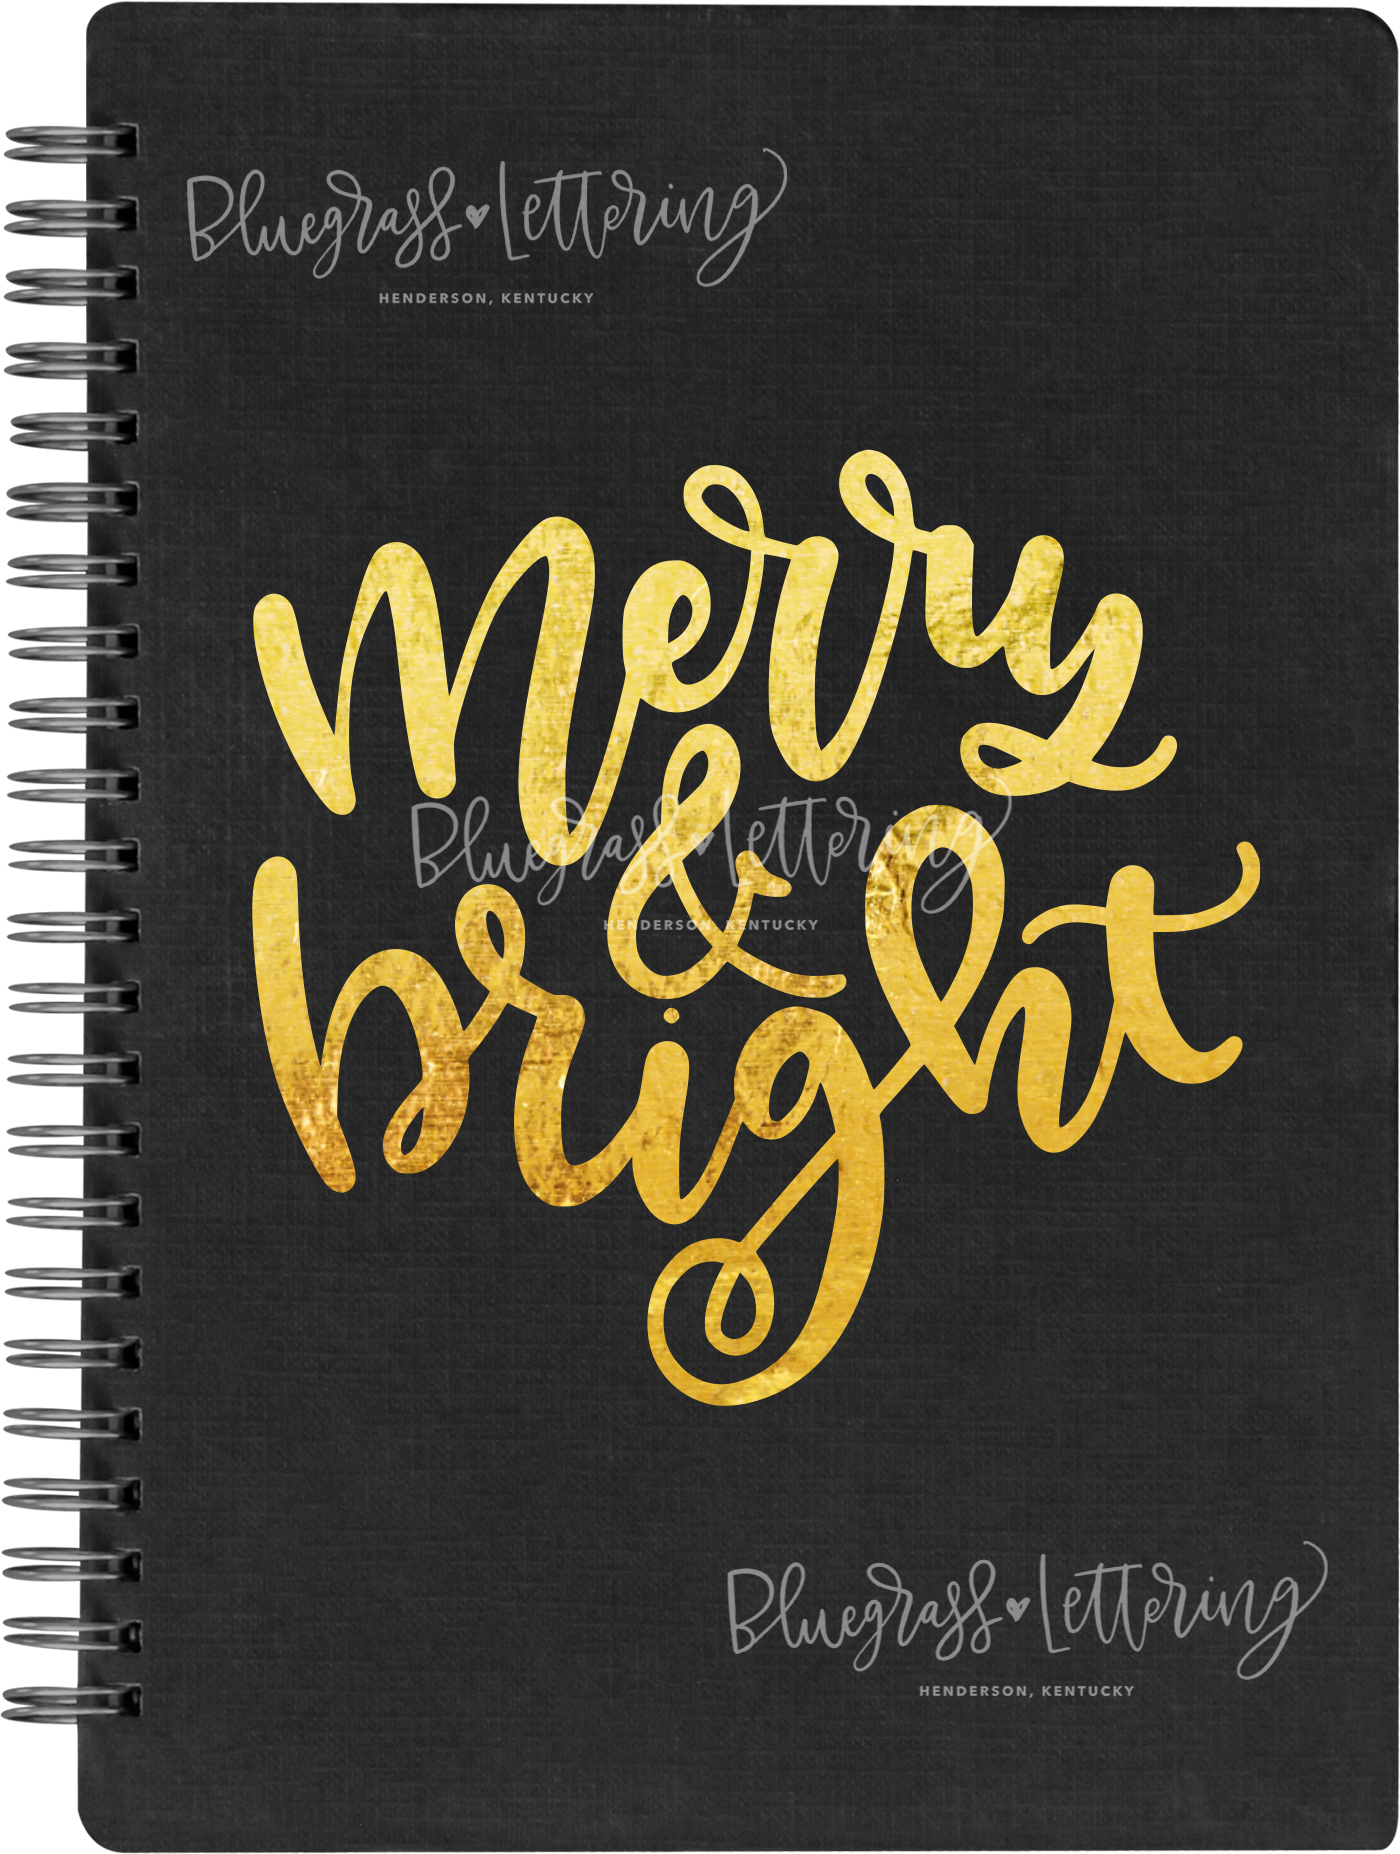 Handlettered Christmas SVG Pack example image 7